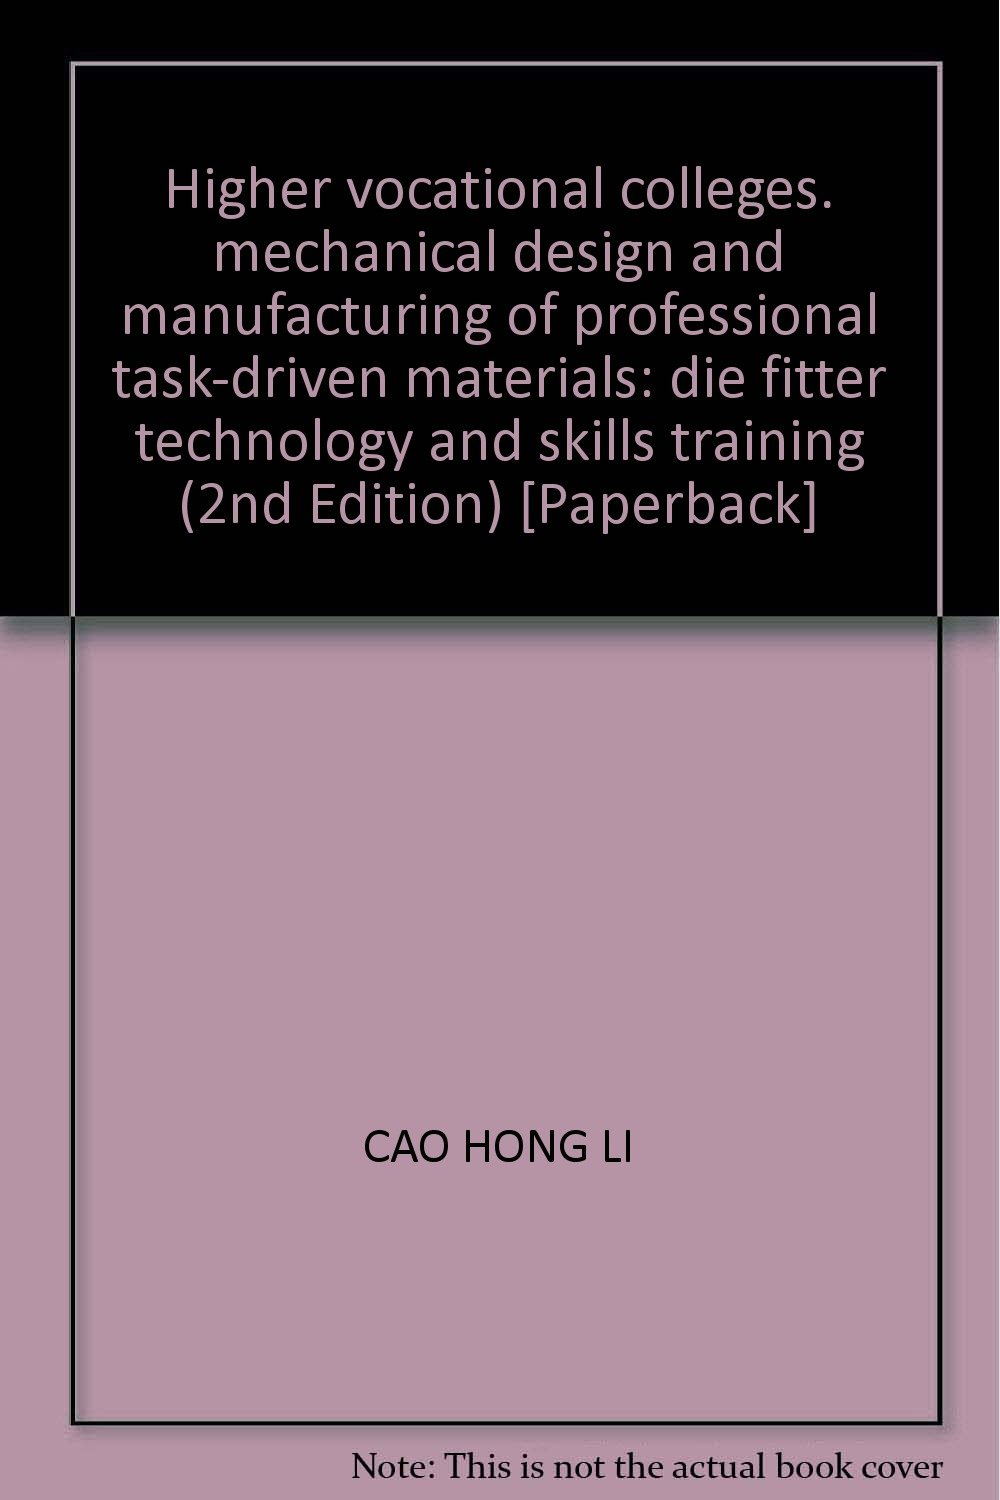 Download Higher vocational colleges. mechanical design and manufacturing of professional task-driven materials: die fitter technology and skills training (2nd Edition) [Paperback] pdf